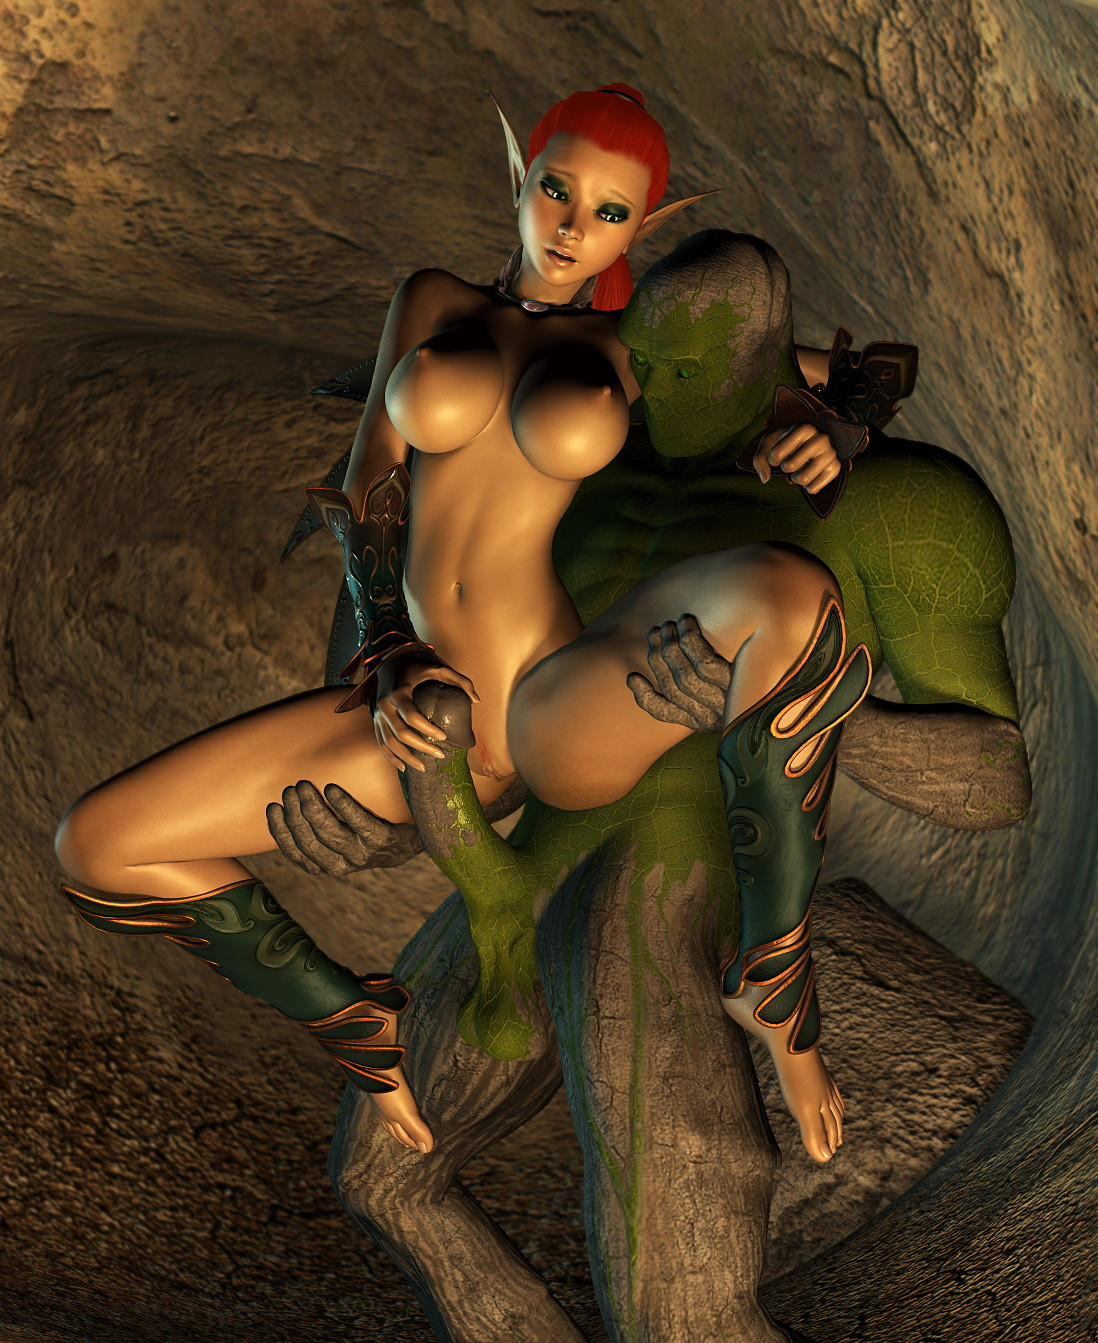 Hot elves fuck 3d fucks picture